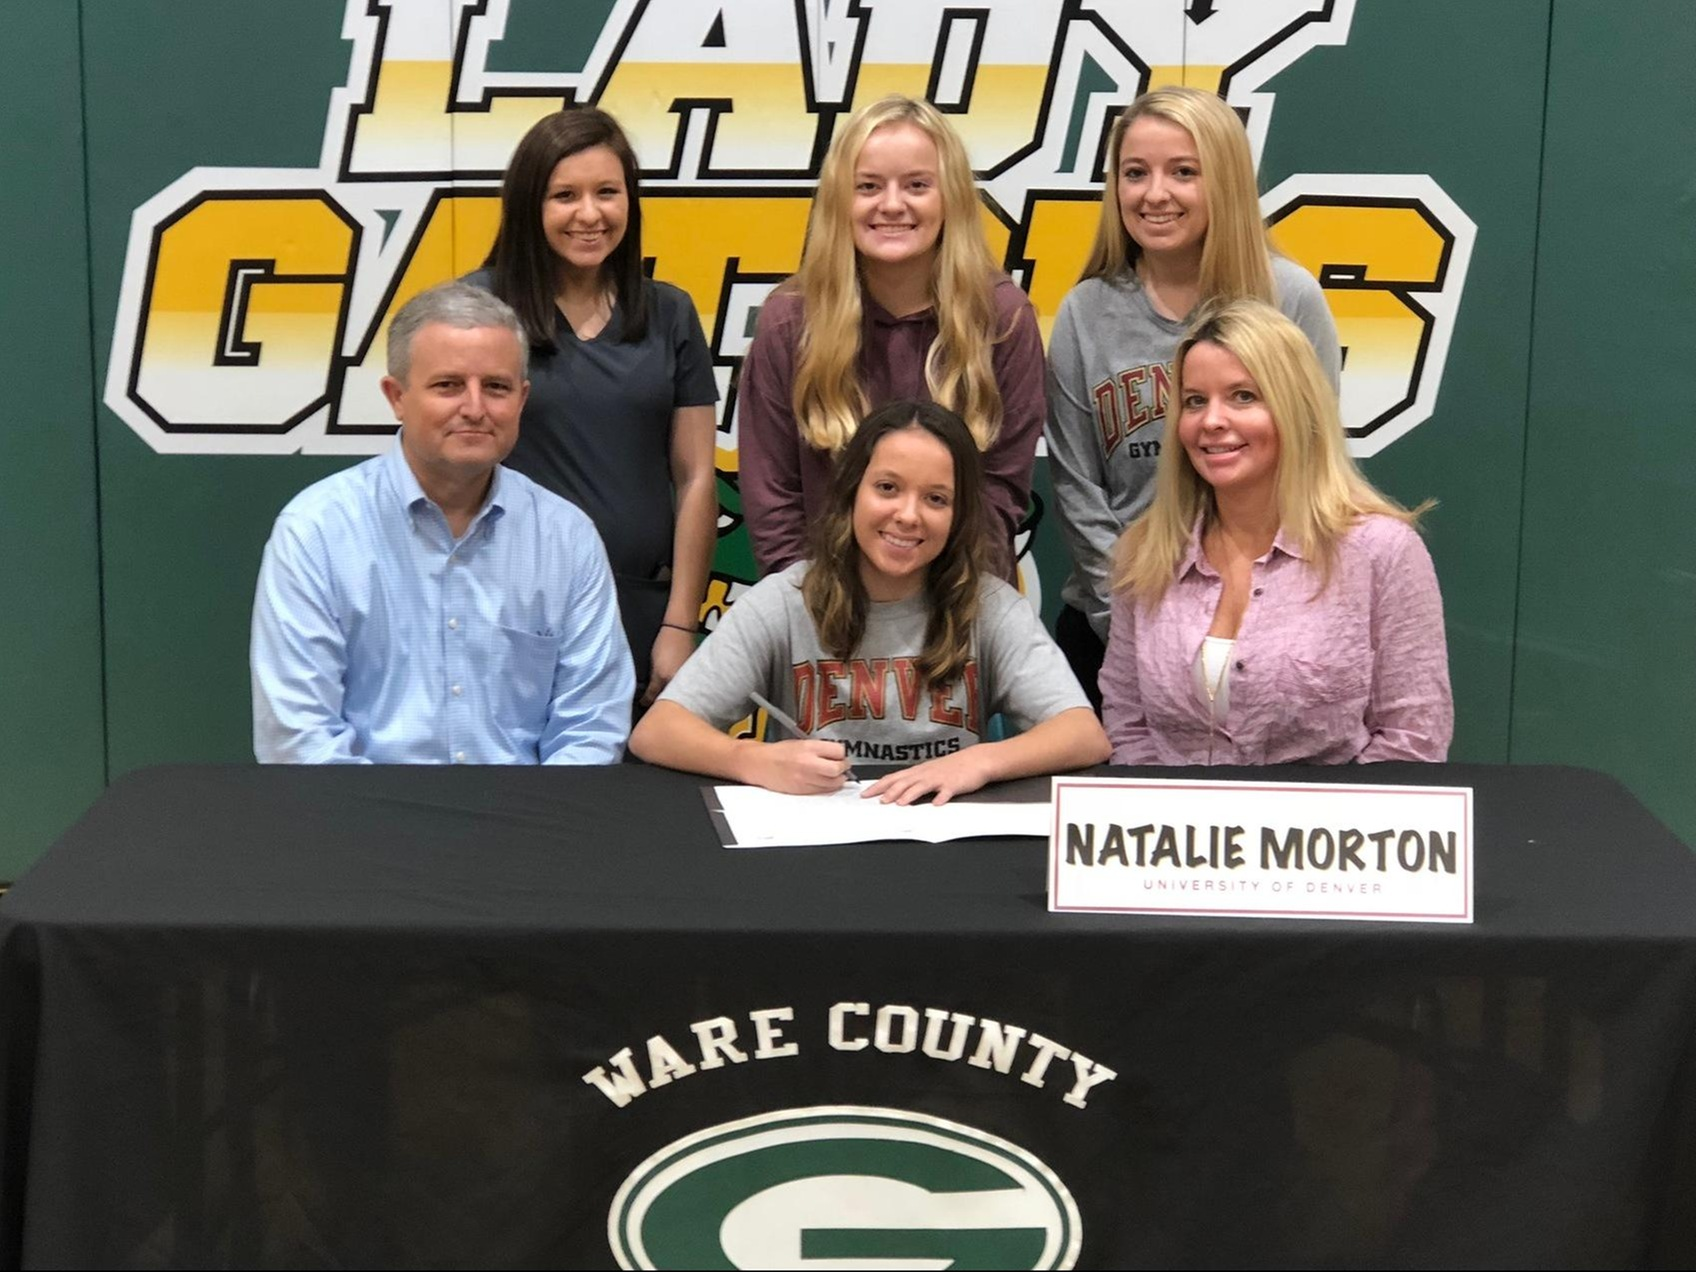 Natalie Morton Signs Scholarship With The University of Denver